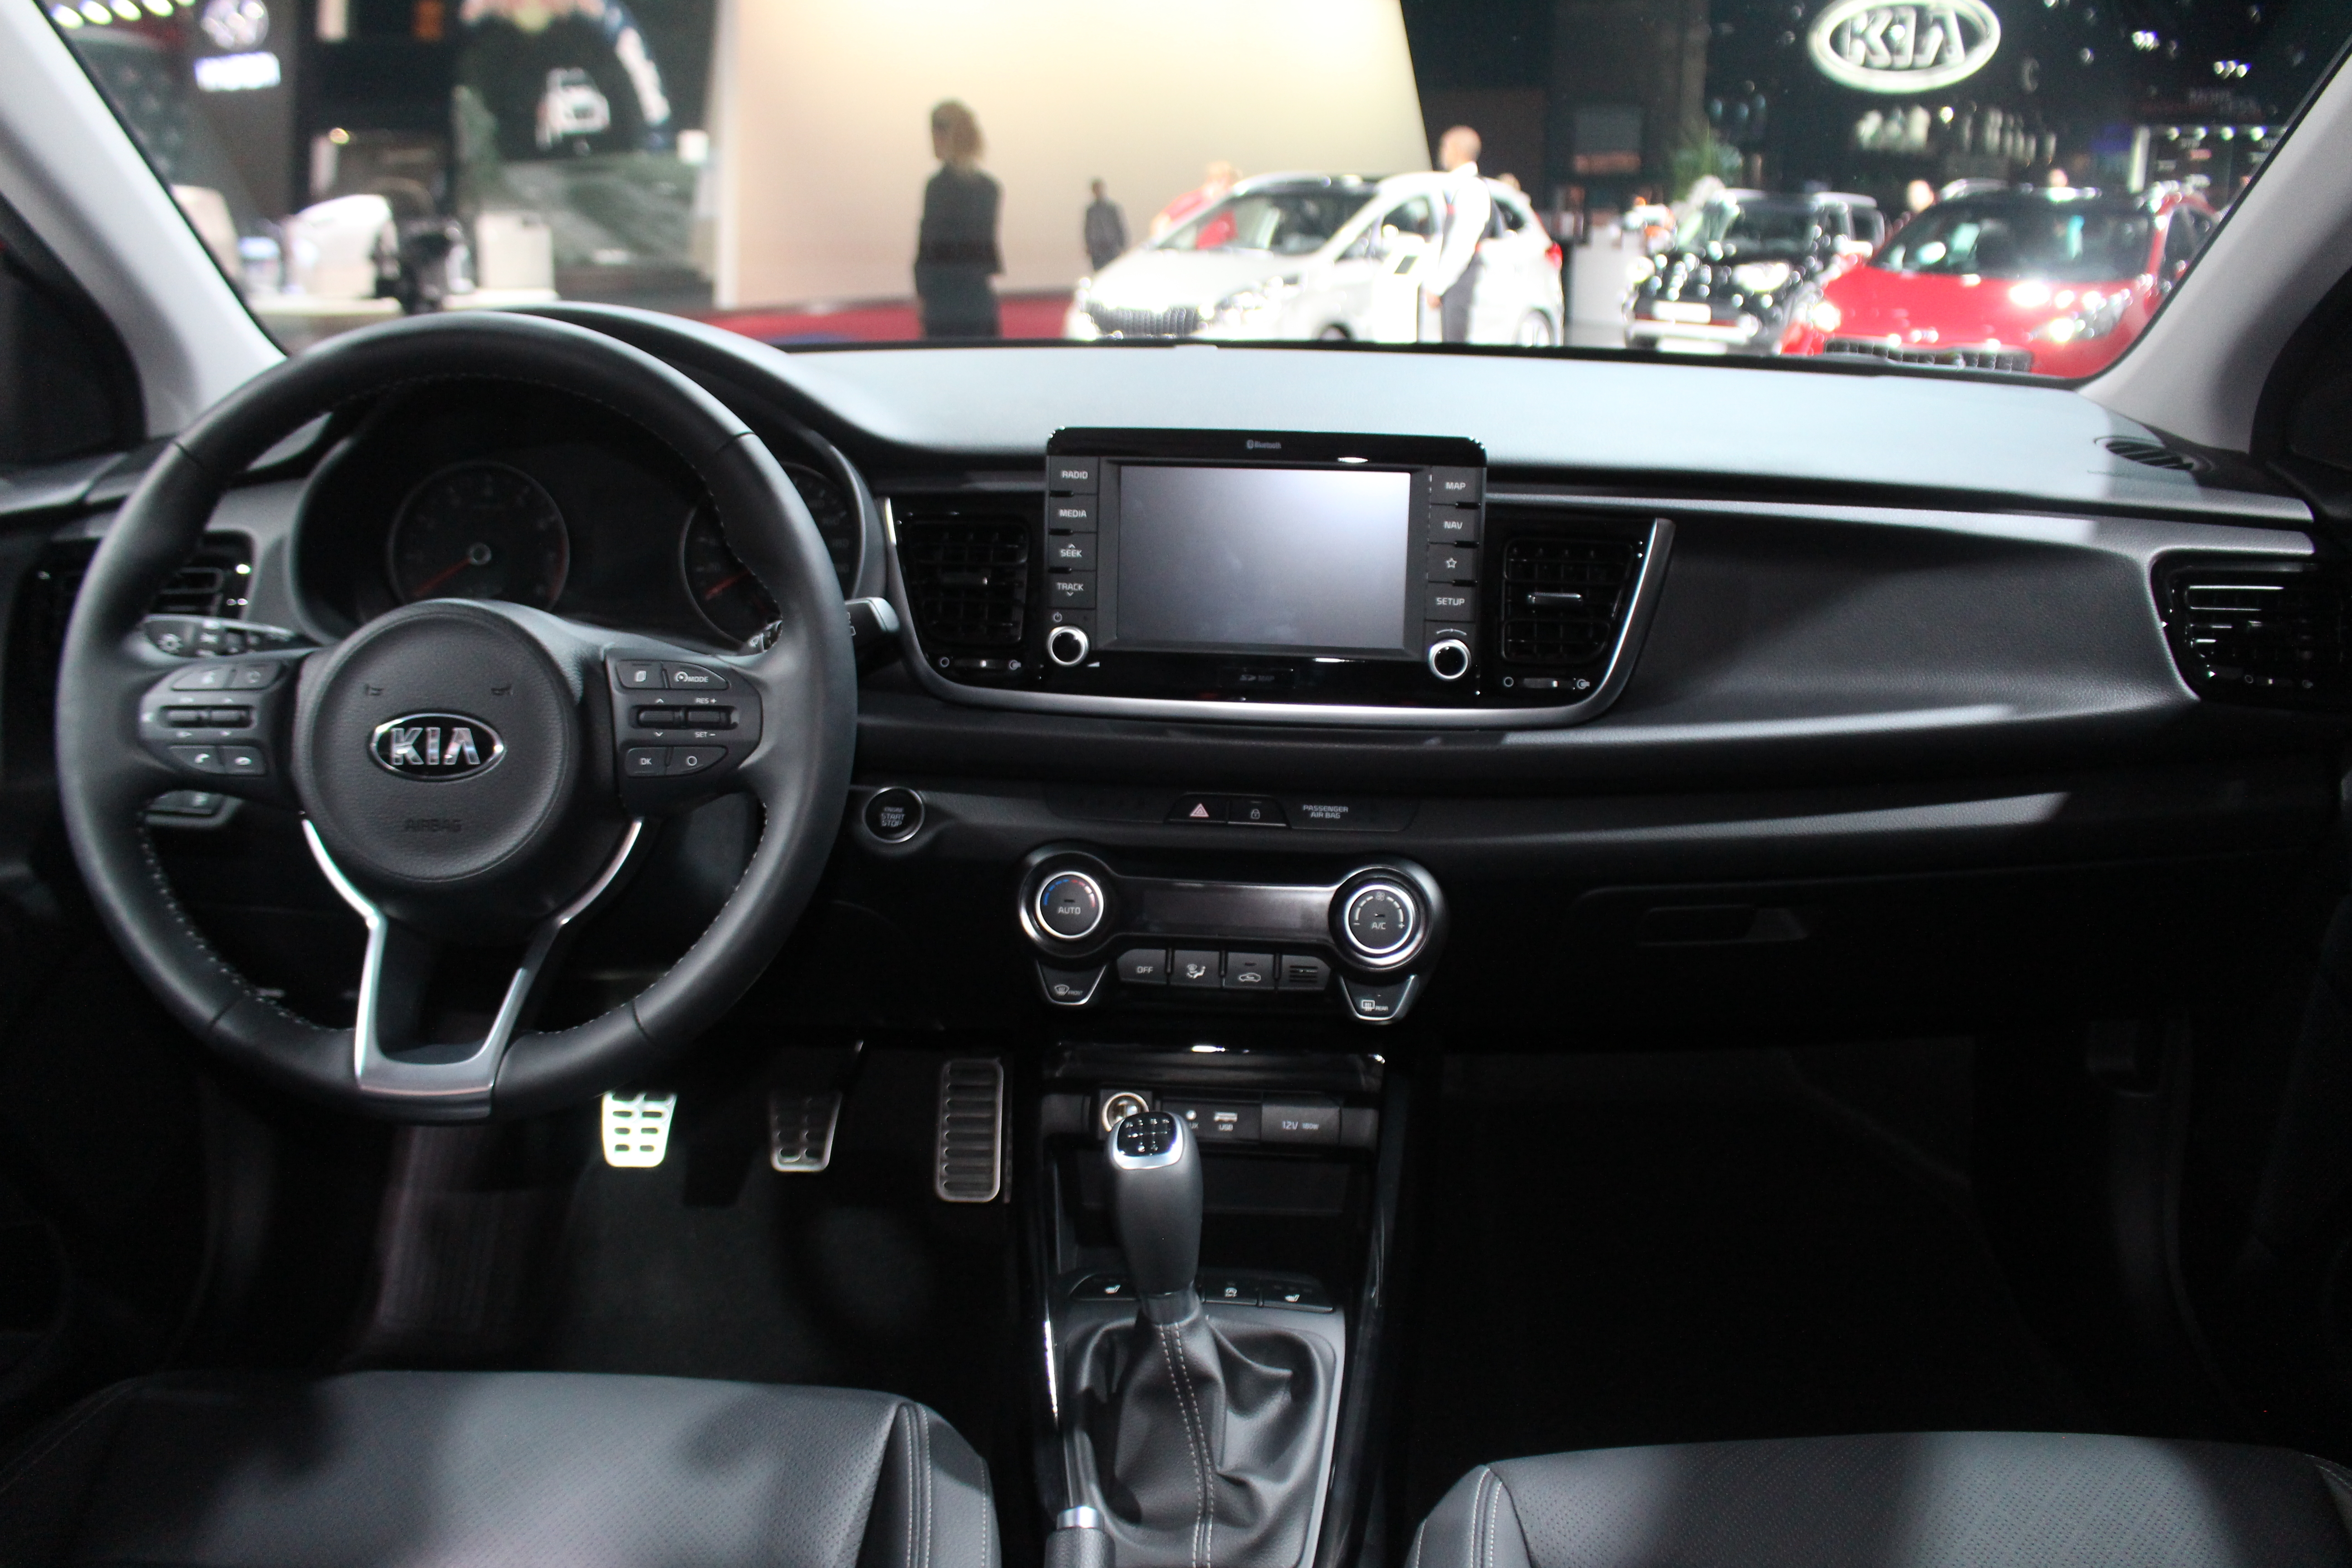 kia rio s rieuse vid o en direct du mondial de l 39 auto 2016. Black Bedroom Furniture Sets. Home Design Ideas